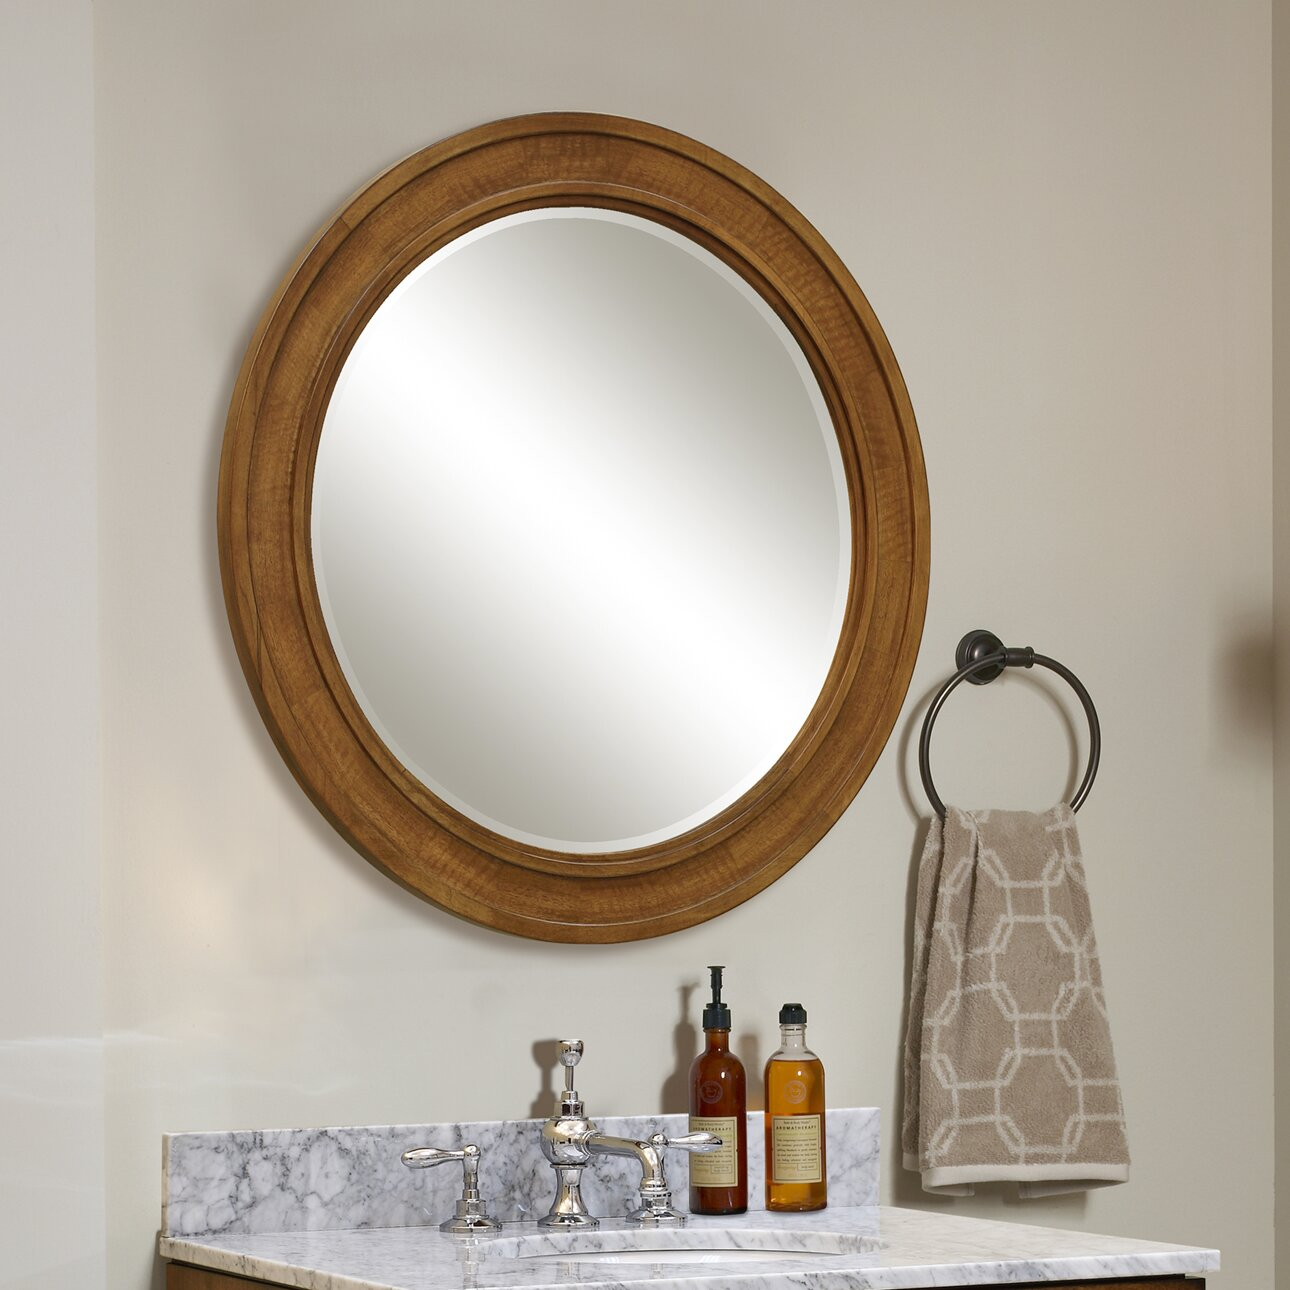 Sagehill ovation 30 round framed mirror wayfair Round framed mirror